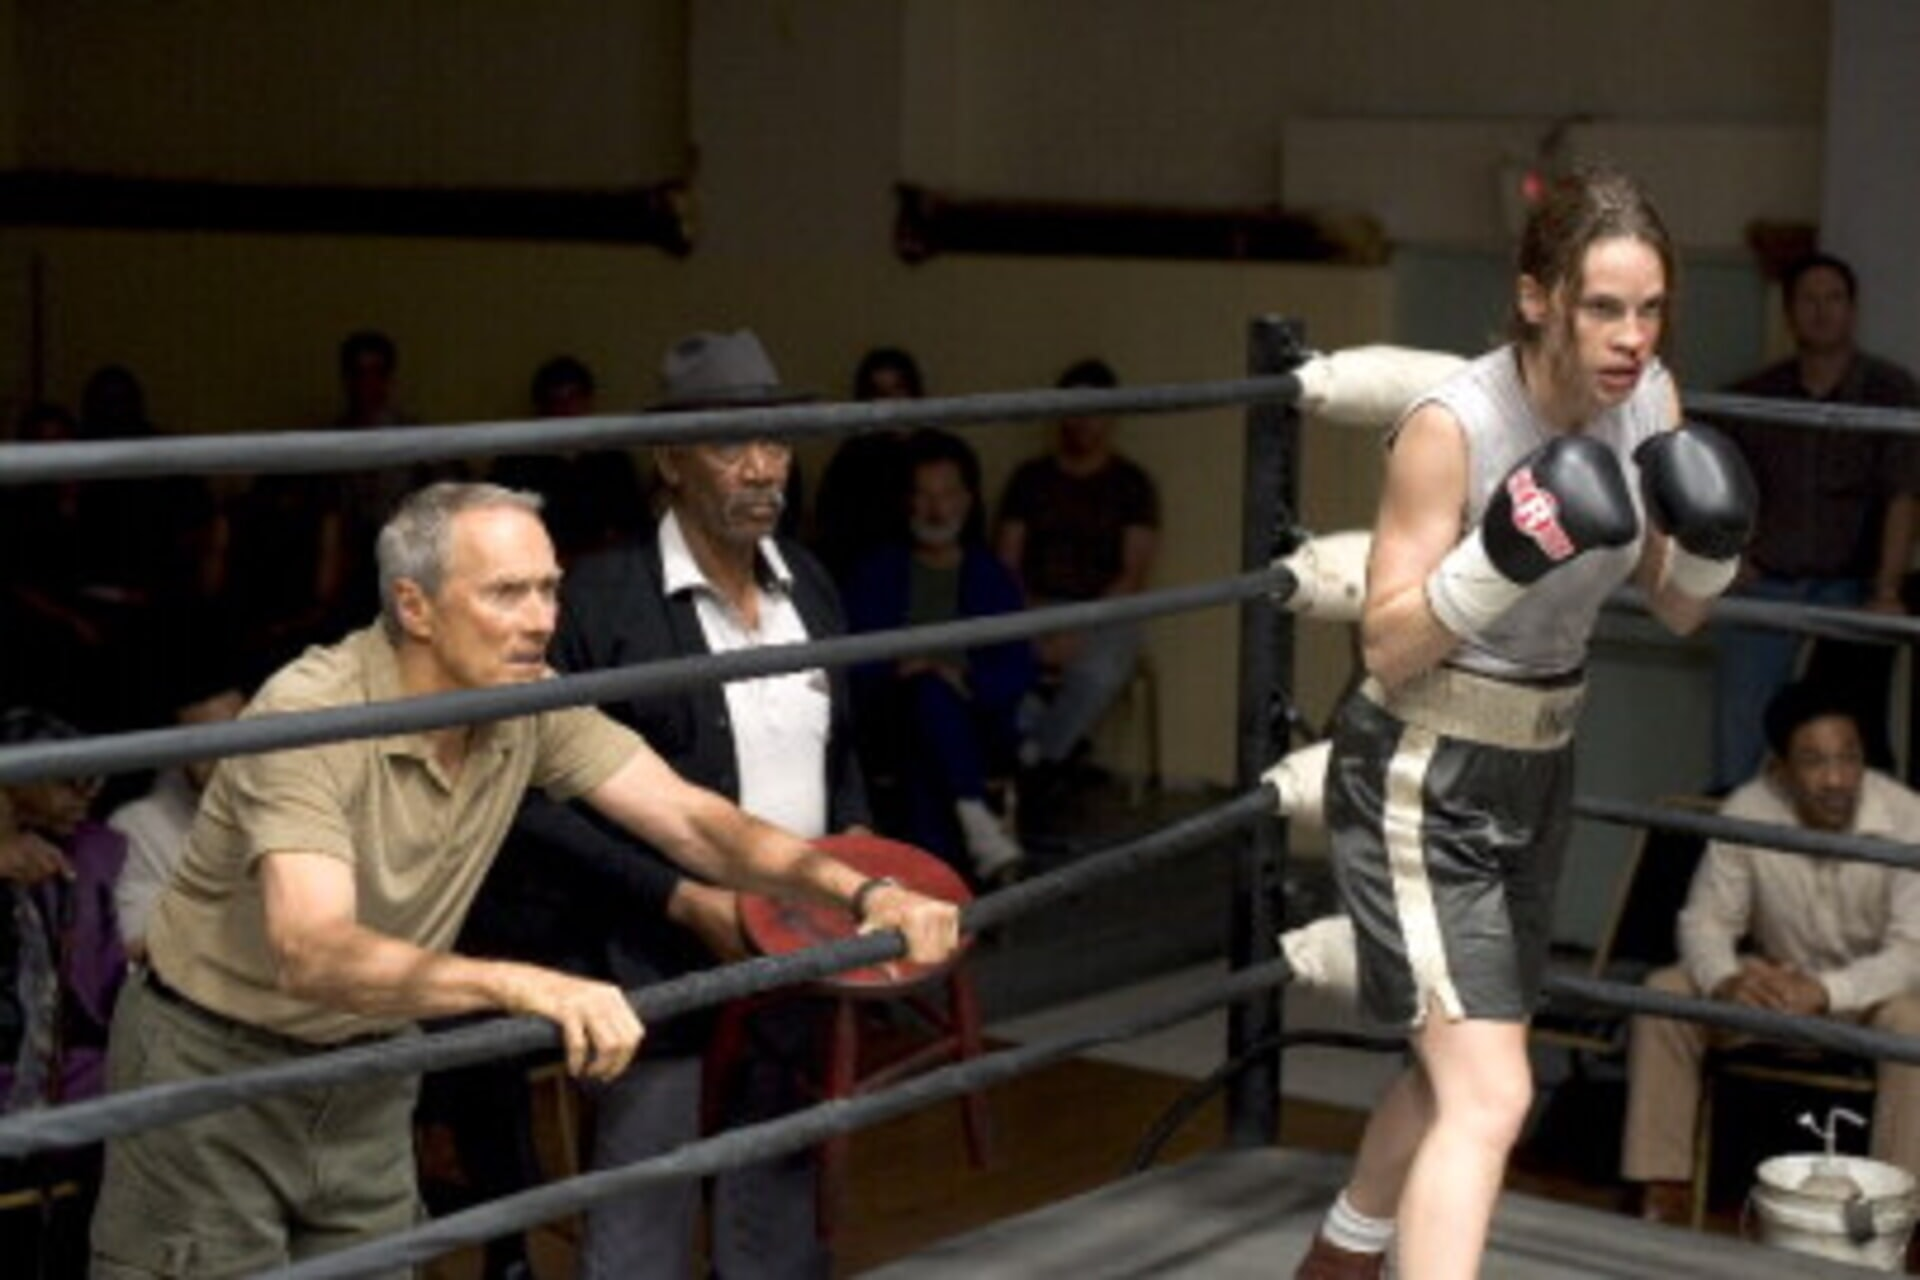 Million Dollar Baby - Image 21